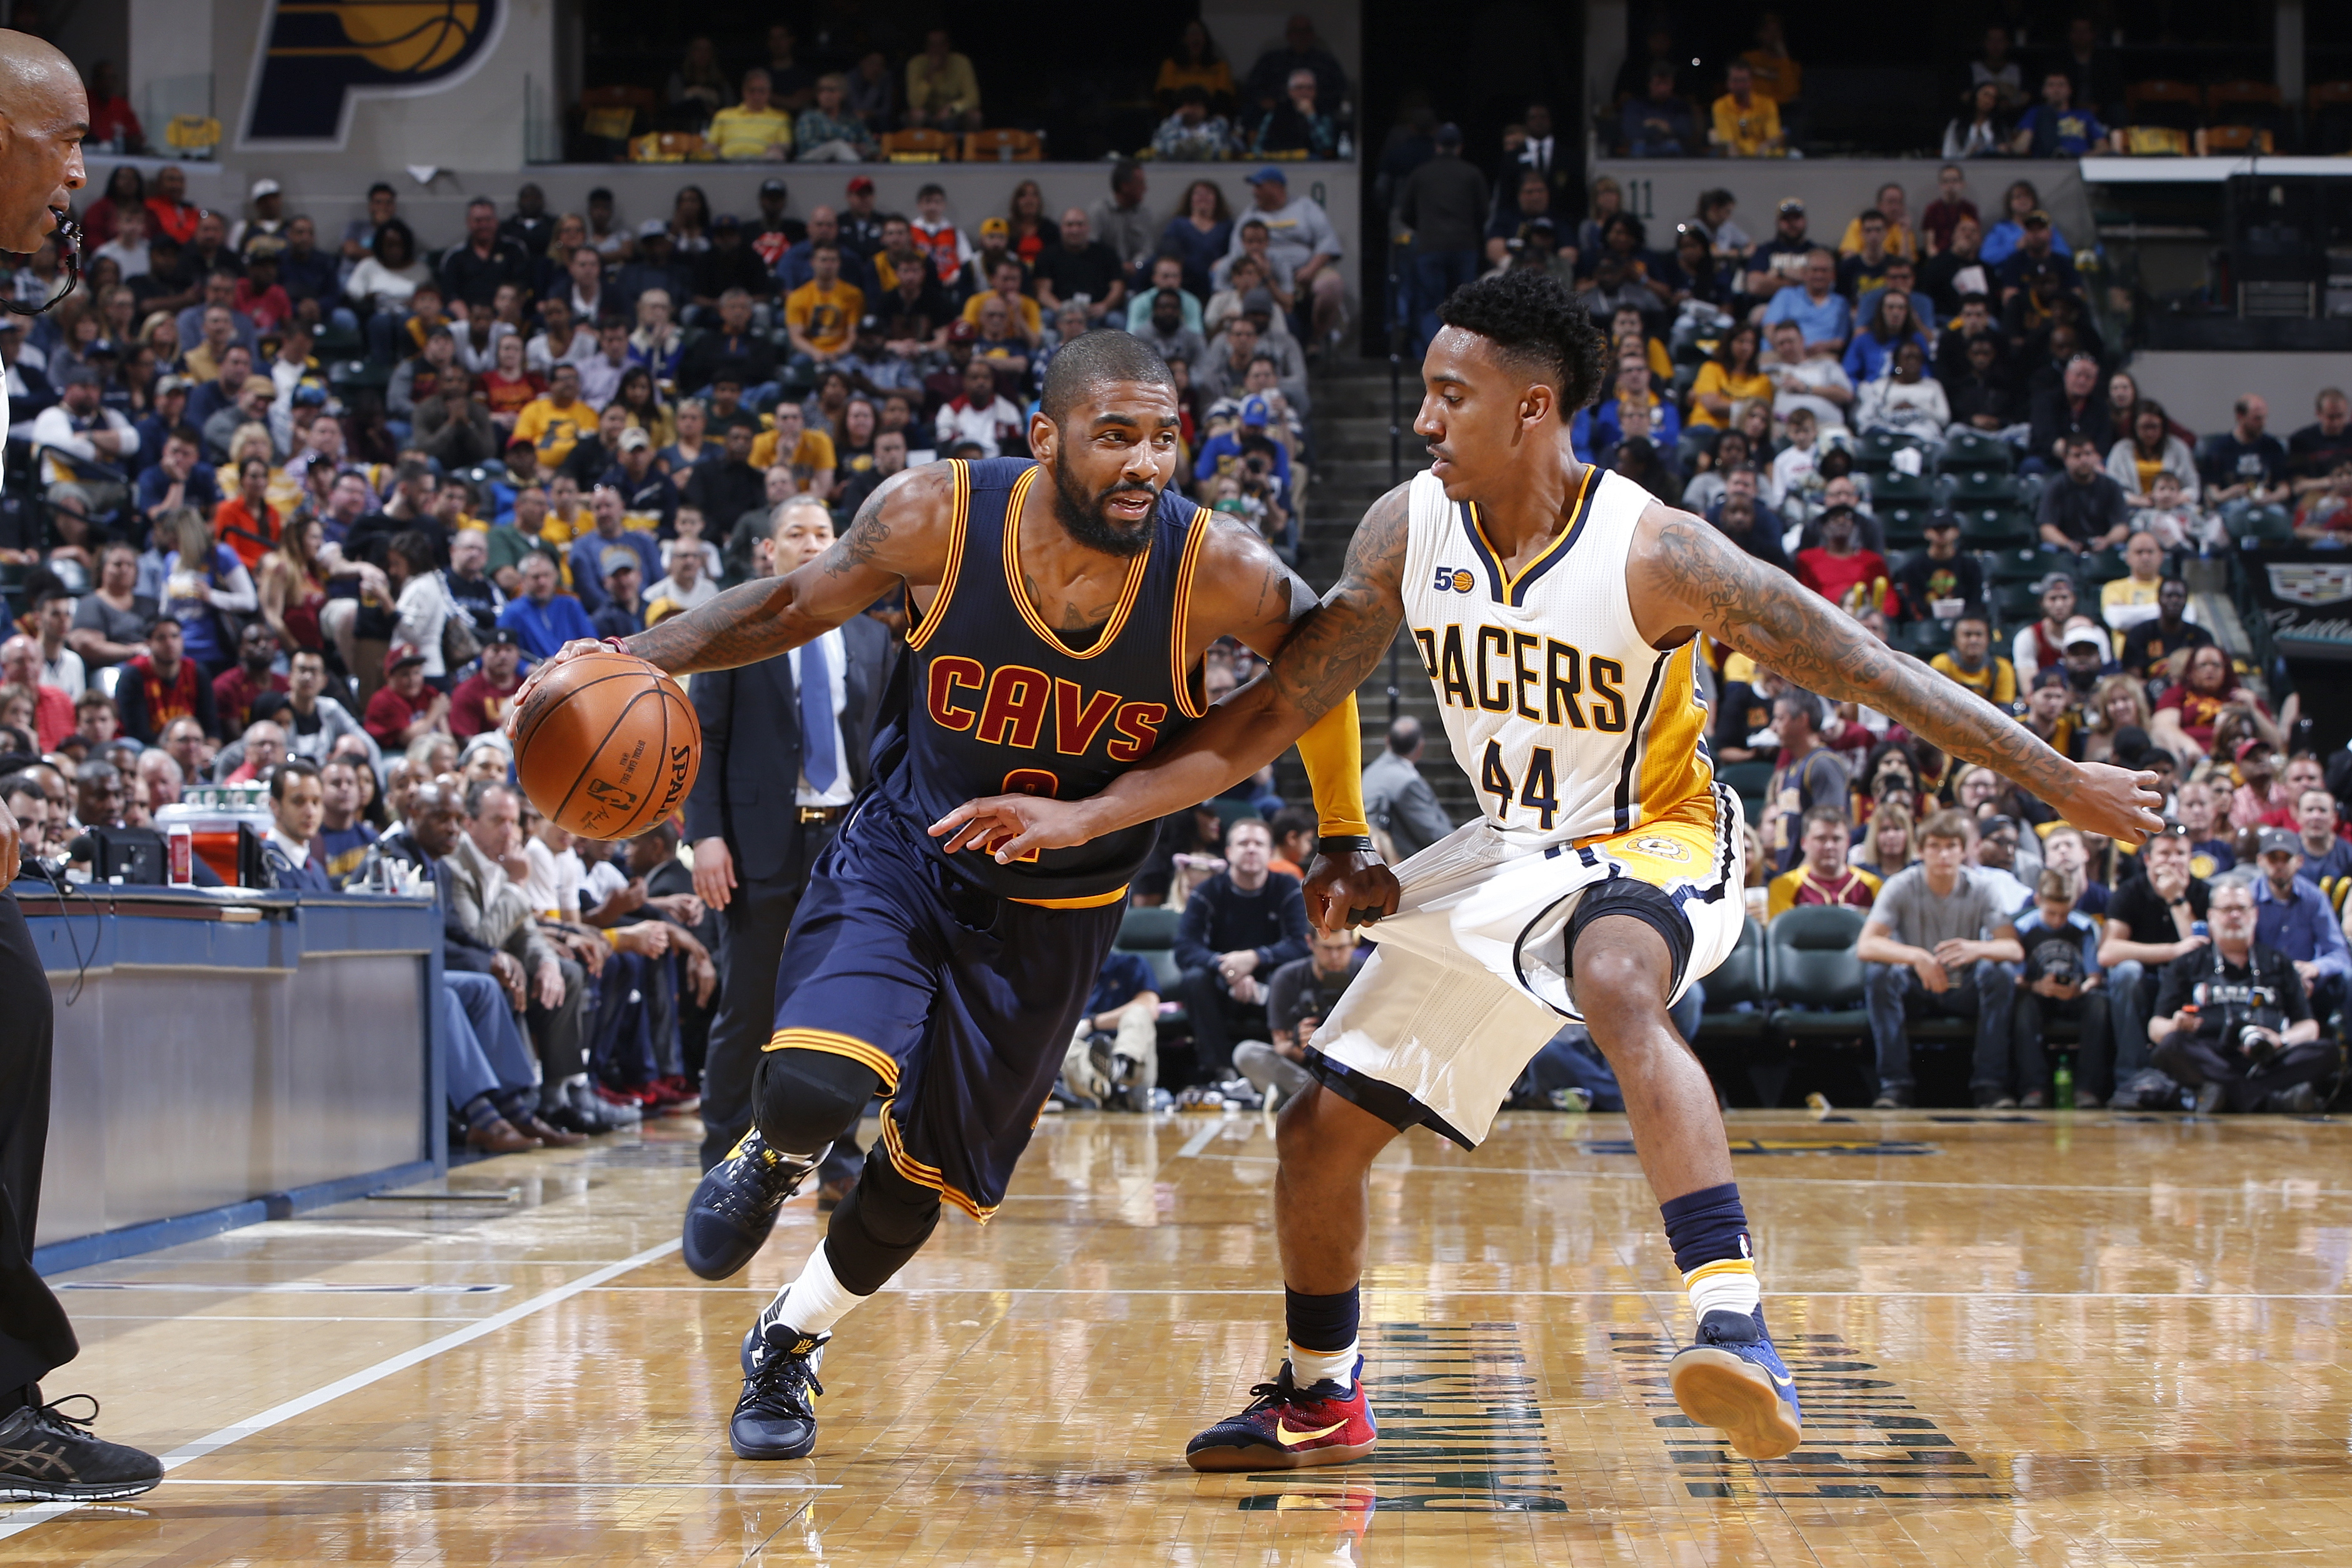 672754276-cleveland-cavaliers-v-indiana-pacers-game-four.jpg